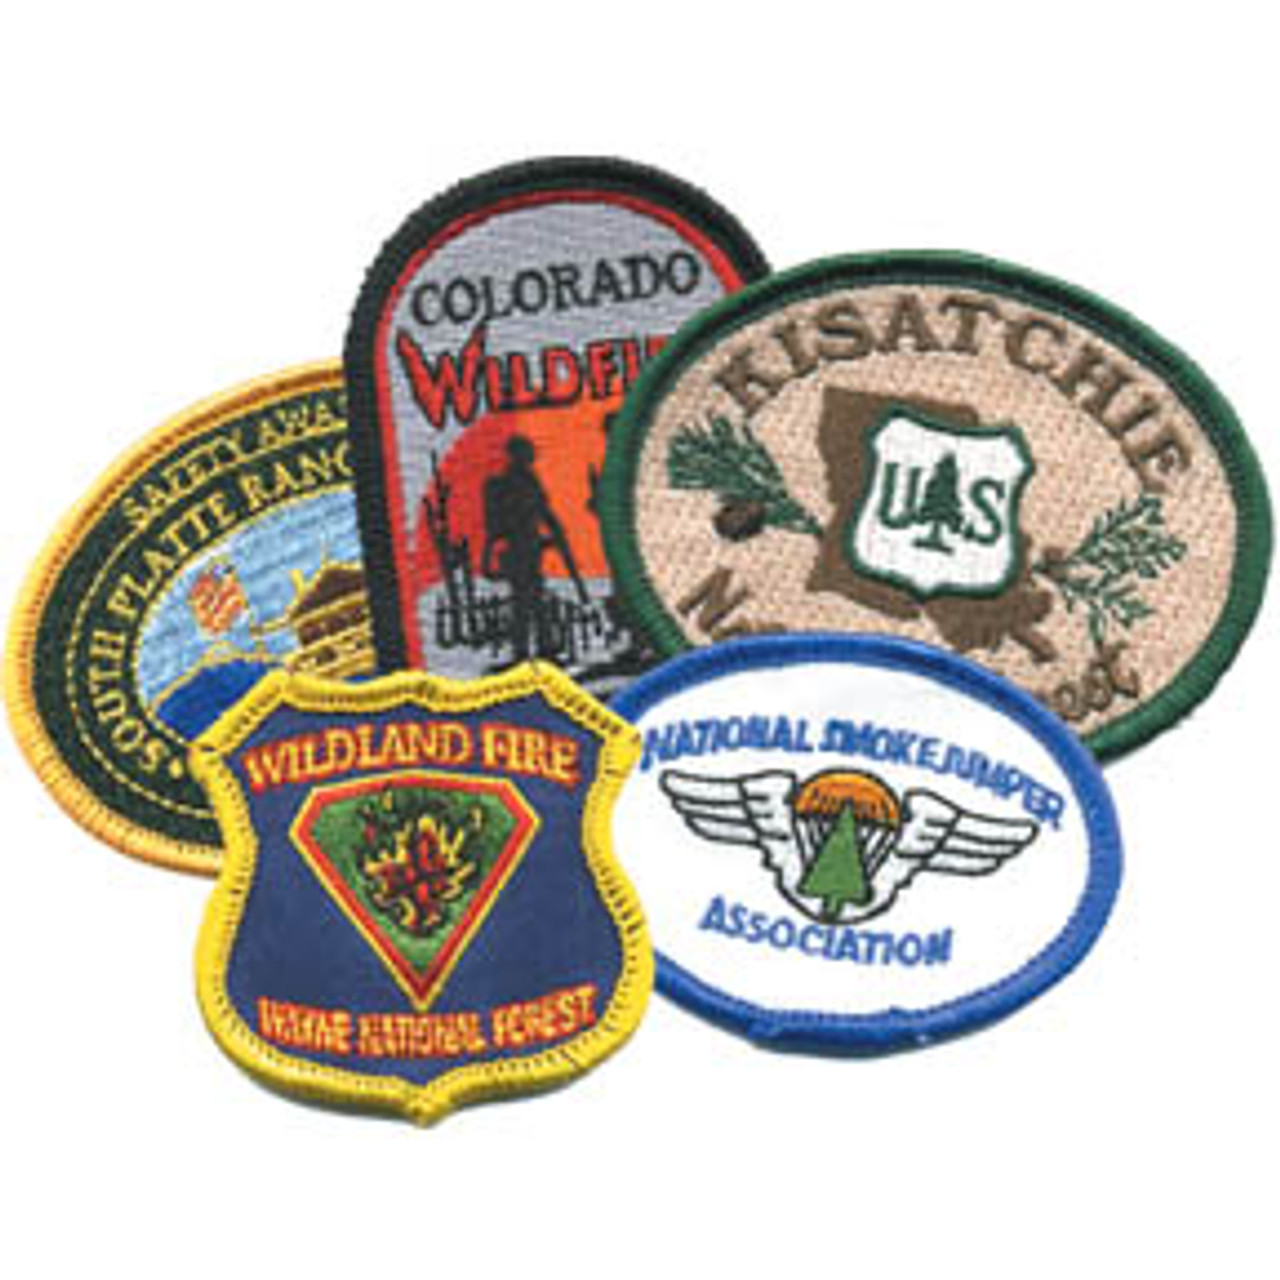 Custom Patches - Please contact Nicole: art@westernheritage.com